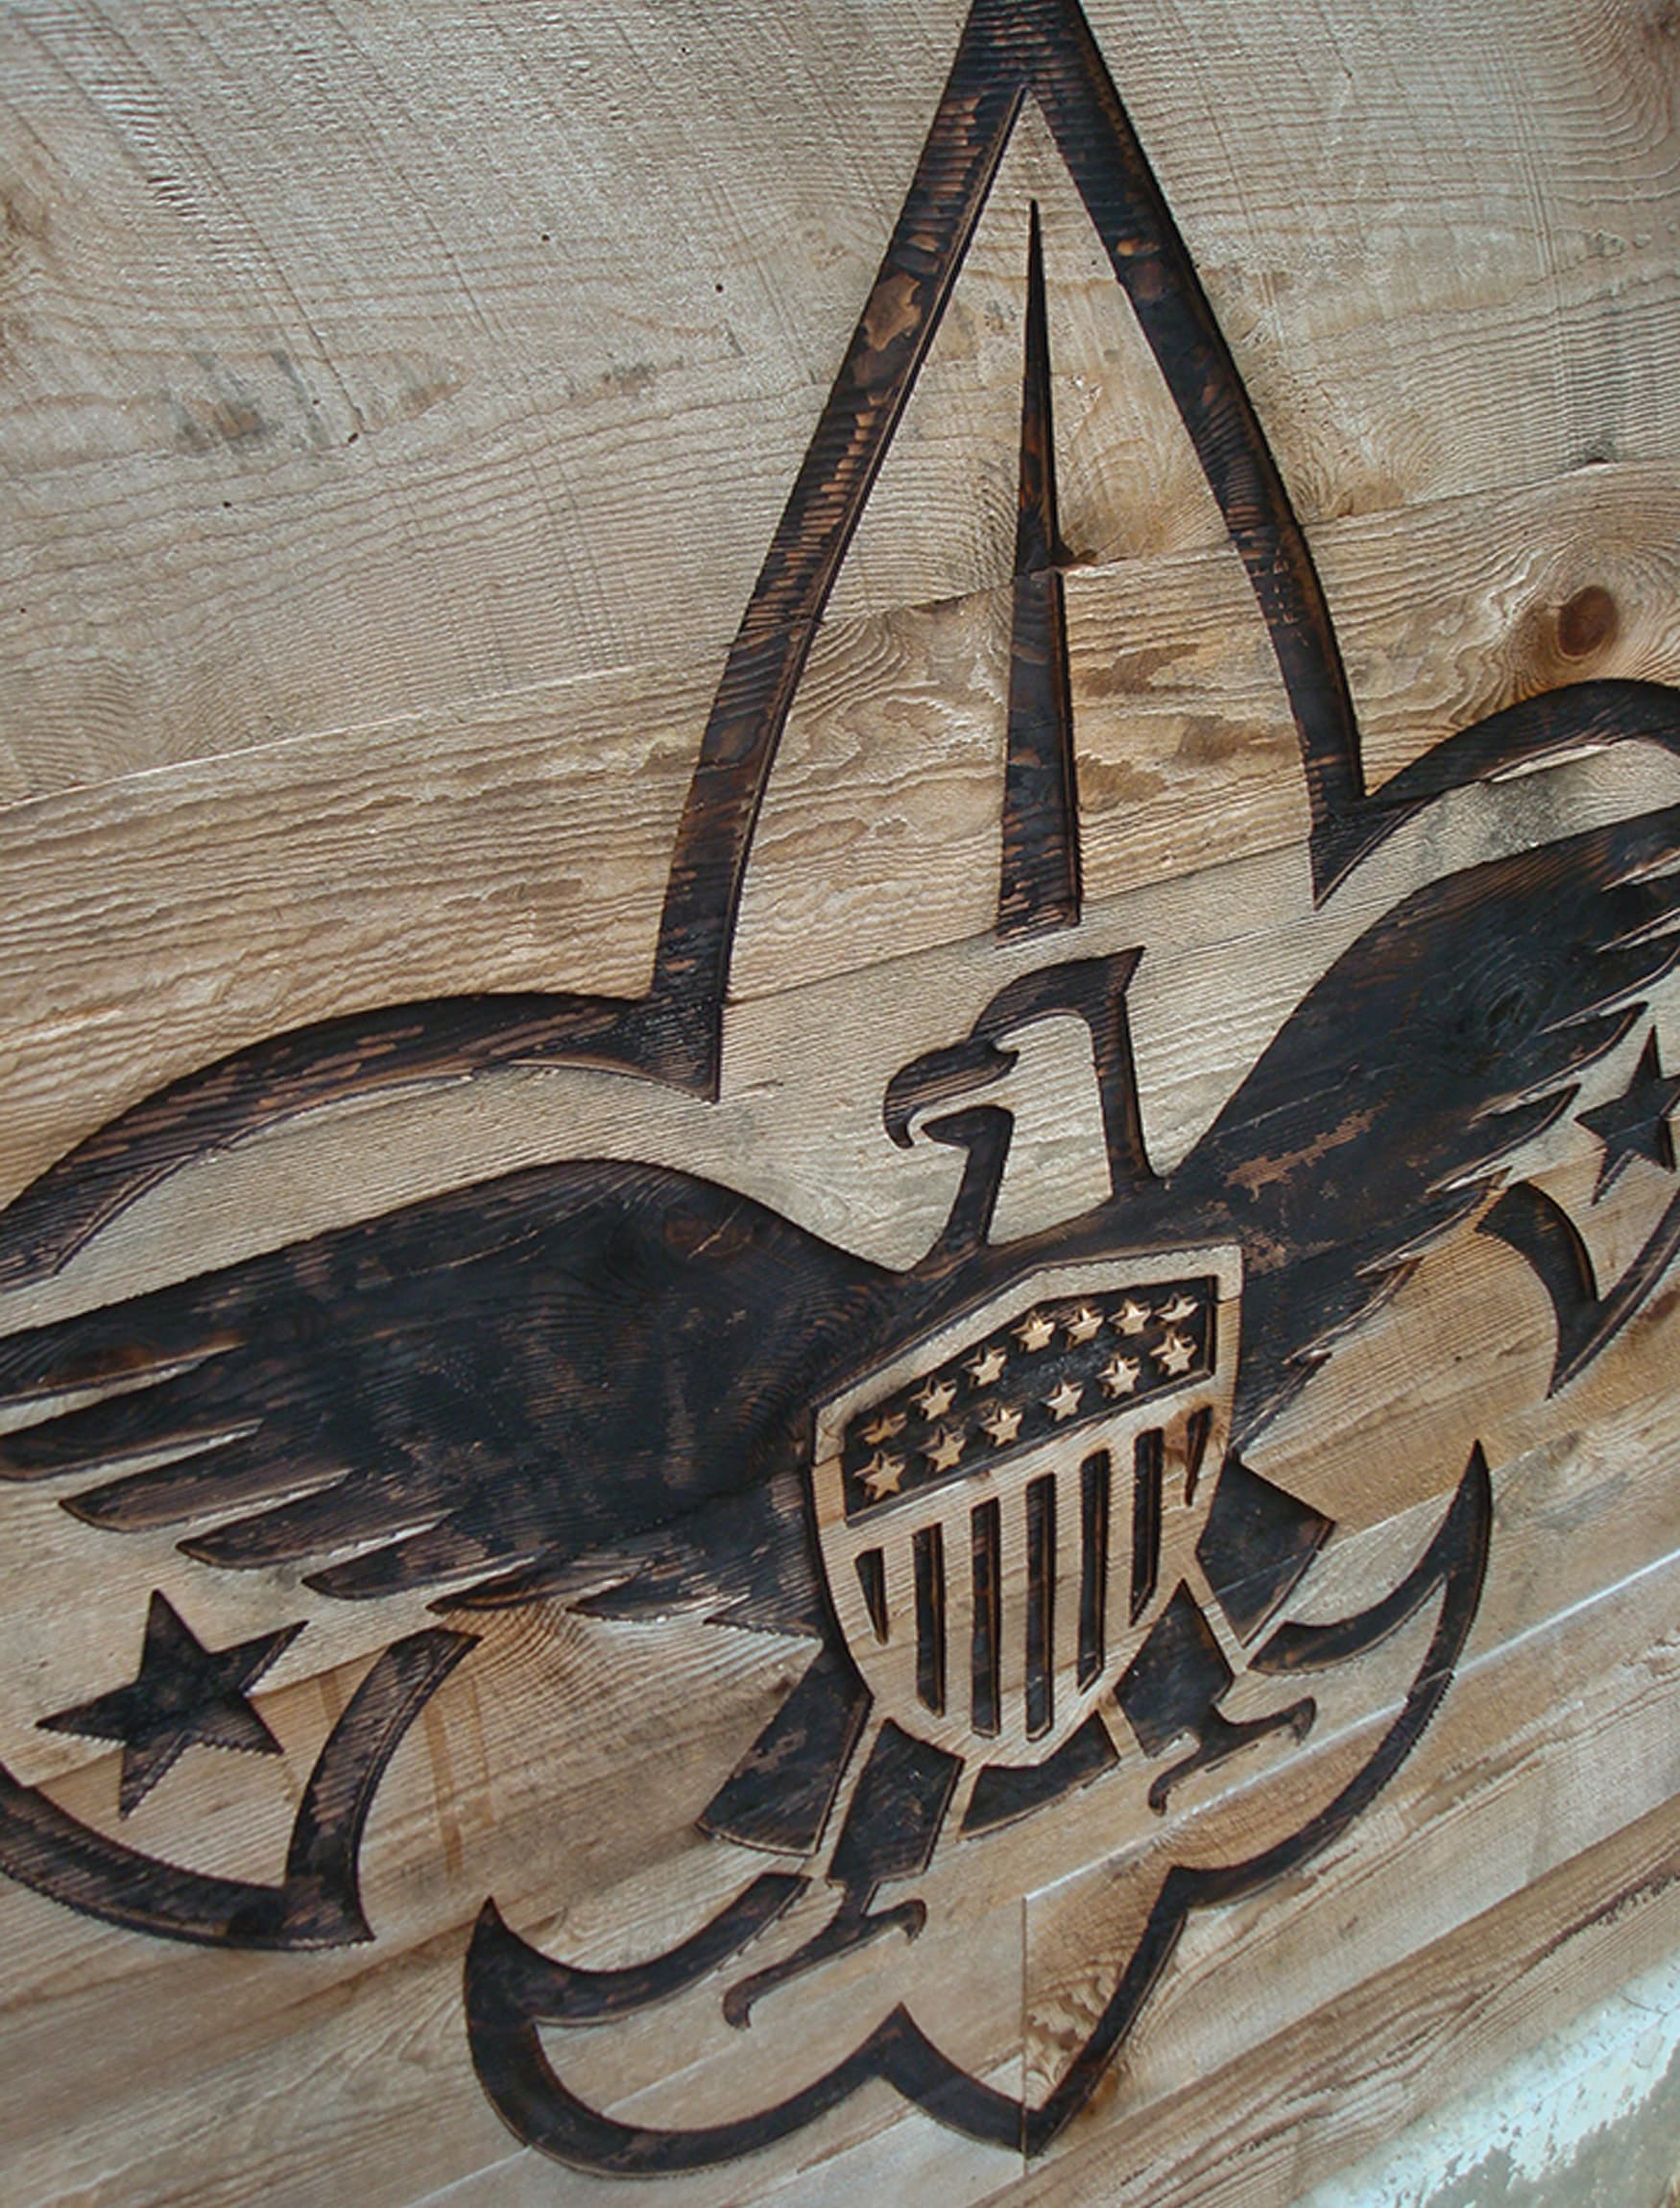 Boy Scouts of America, The Summit Bechtel Reserve wood burn crest design